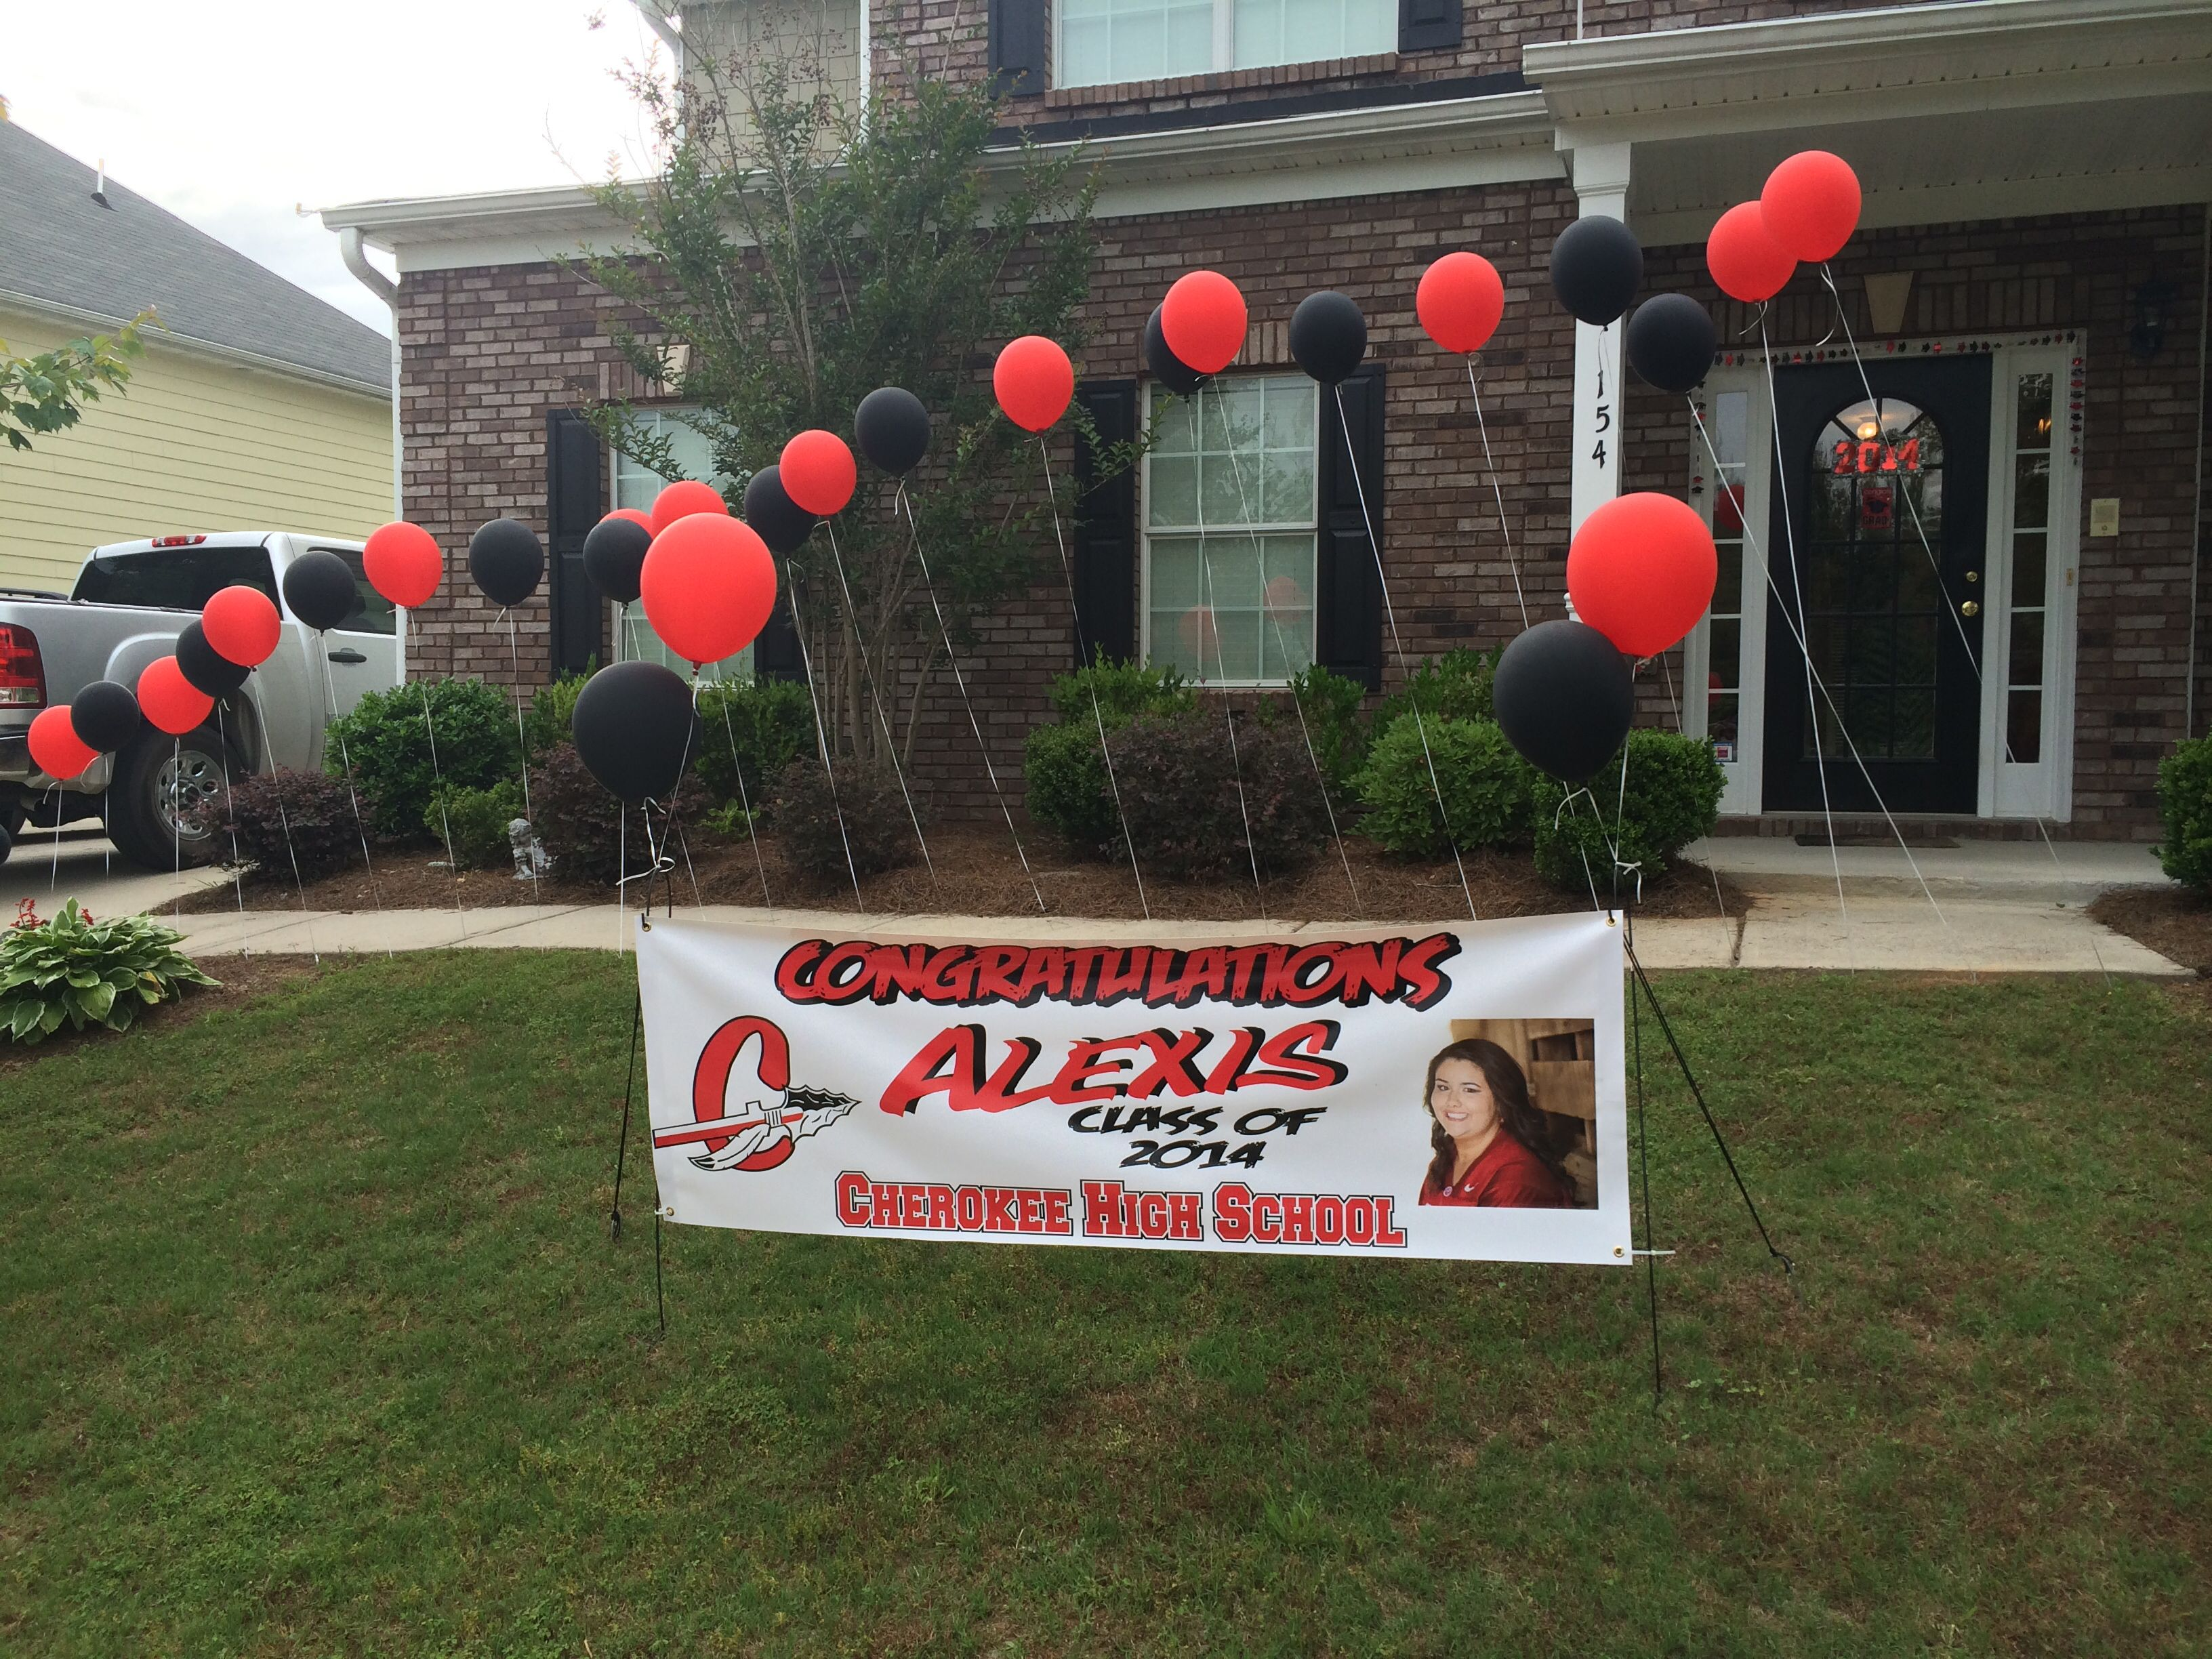 Graduation Party Front Yard Banner With Stair Step Balloons Graduation Party Graduation Banner Balloons